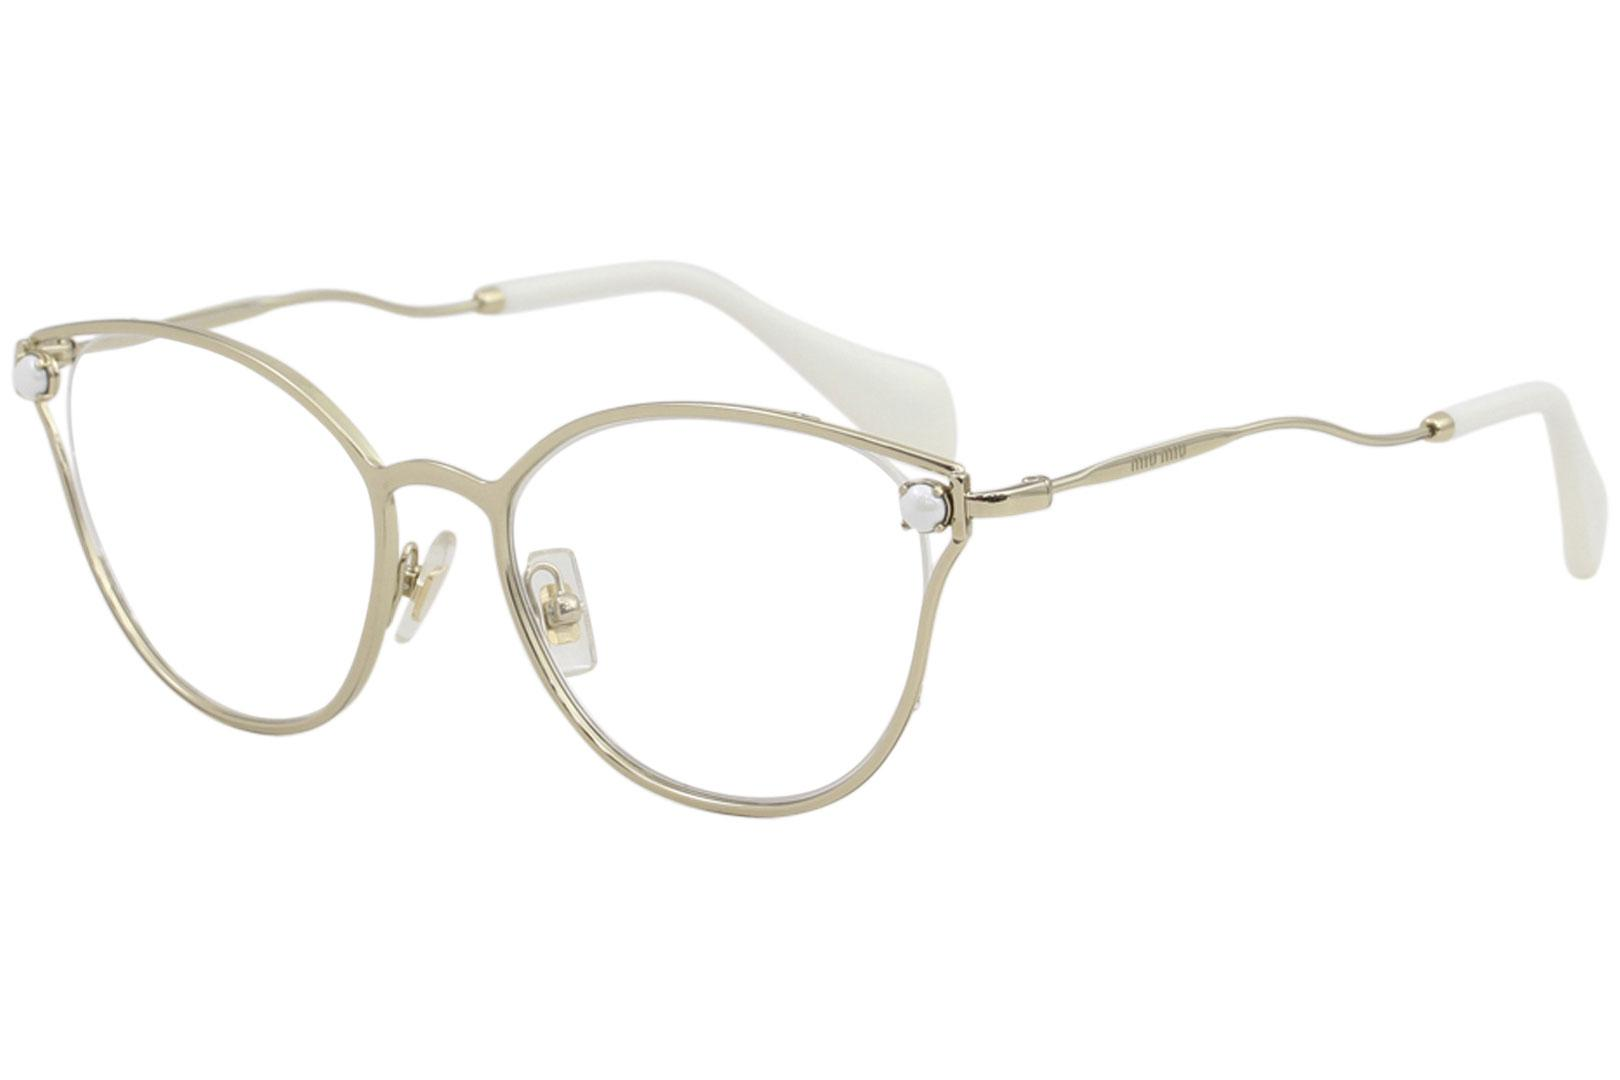 Image of Miu Miu Women's Eyeglasses VMU53Q VMU/53Q ZVN1O1 Pale Gold Optical Frame 52mm - Pale Gold   ZVN1O1 - Lens 52 Bridge 18 B 43.2 ED 56.5 Temple 145mm